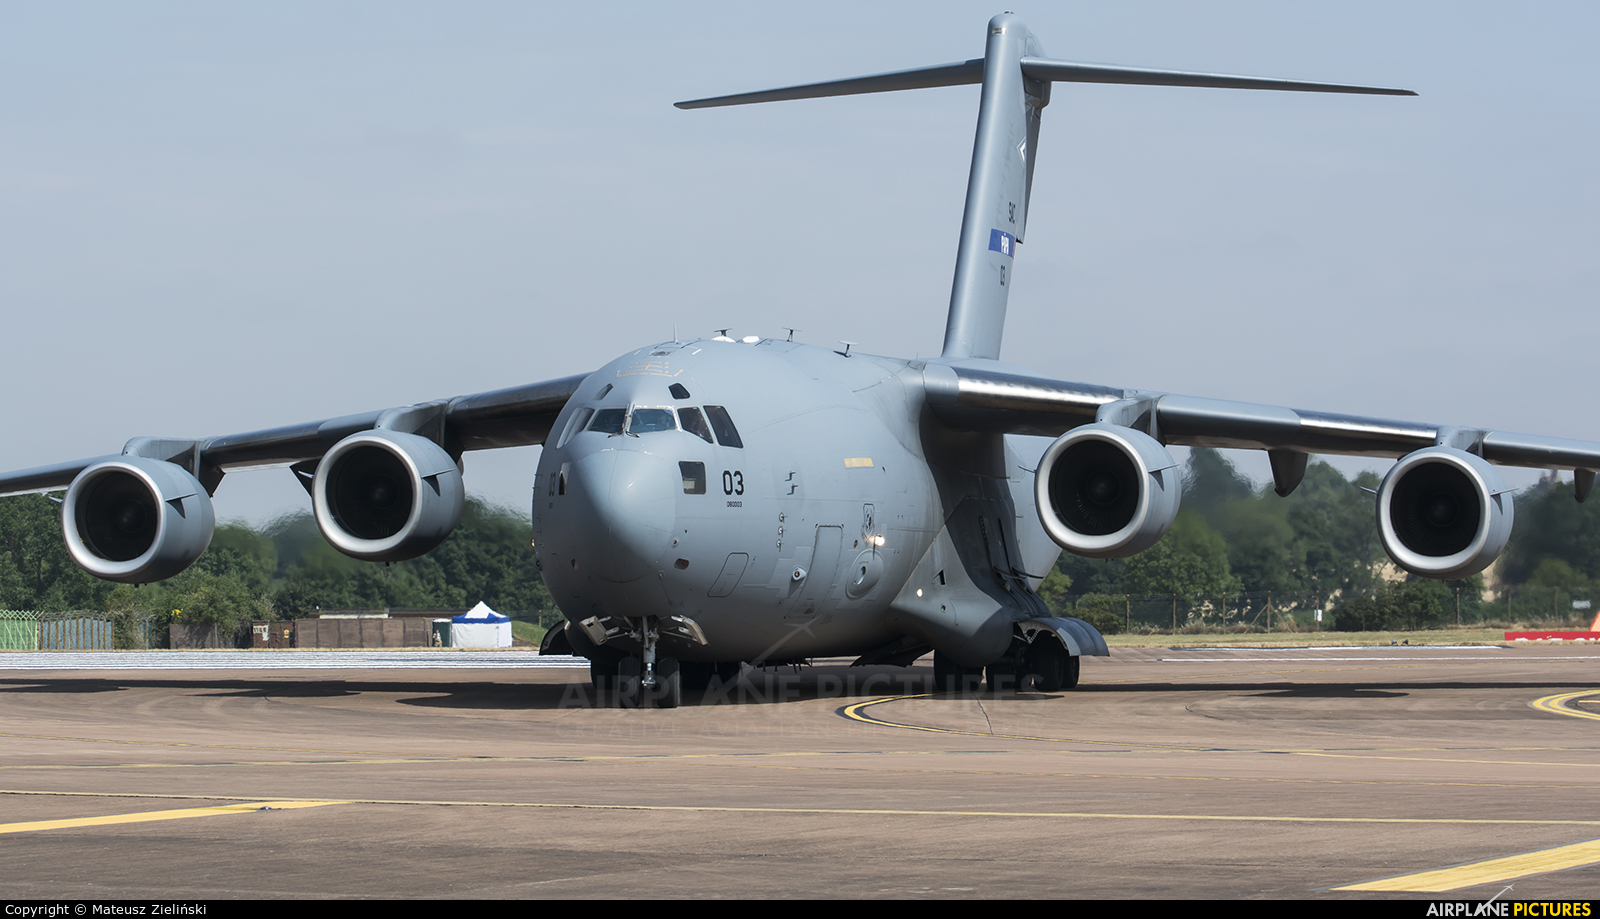 Strategic Airlift Capability NATO 08-0003 aircraft at Fairford